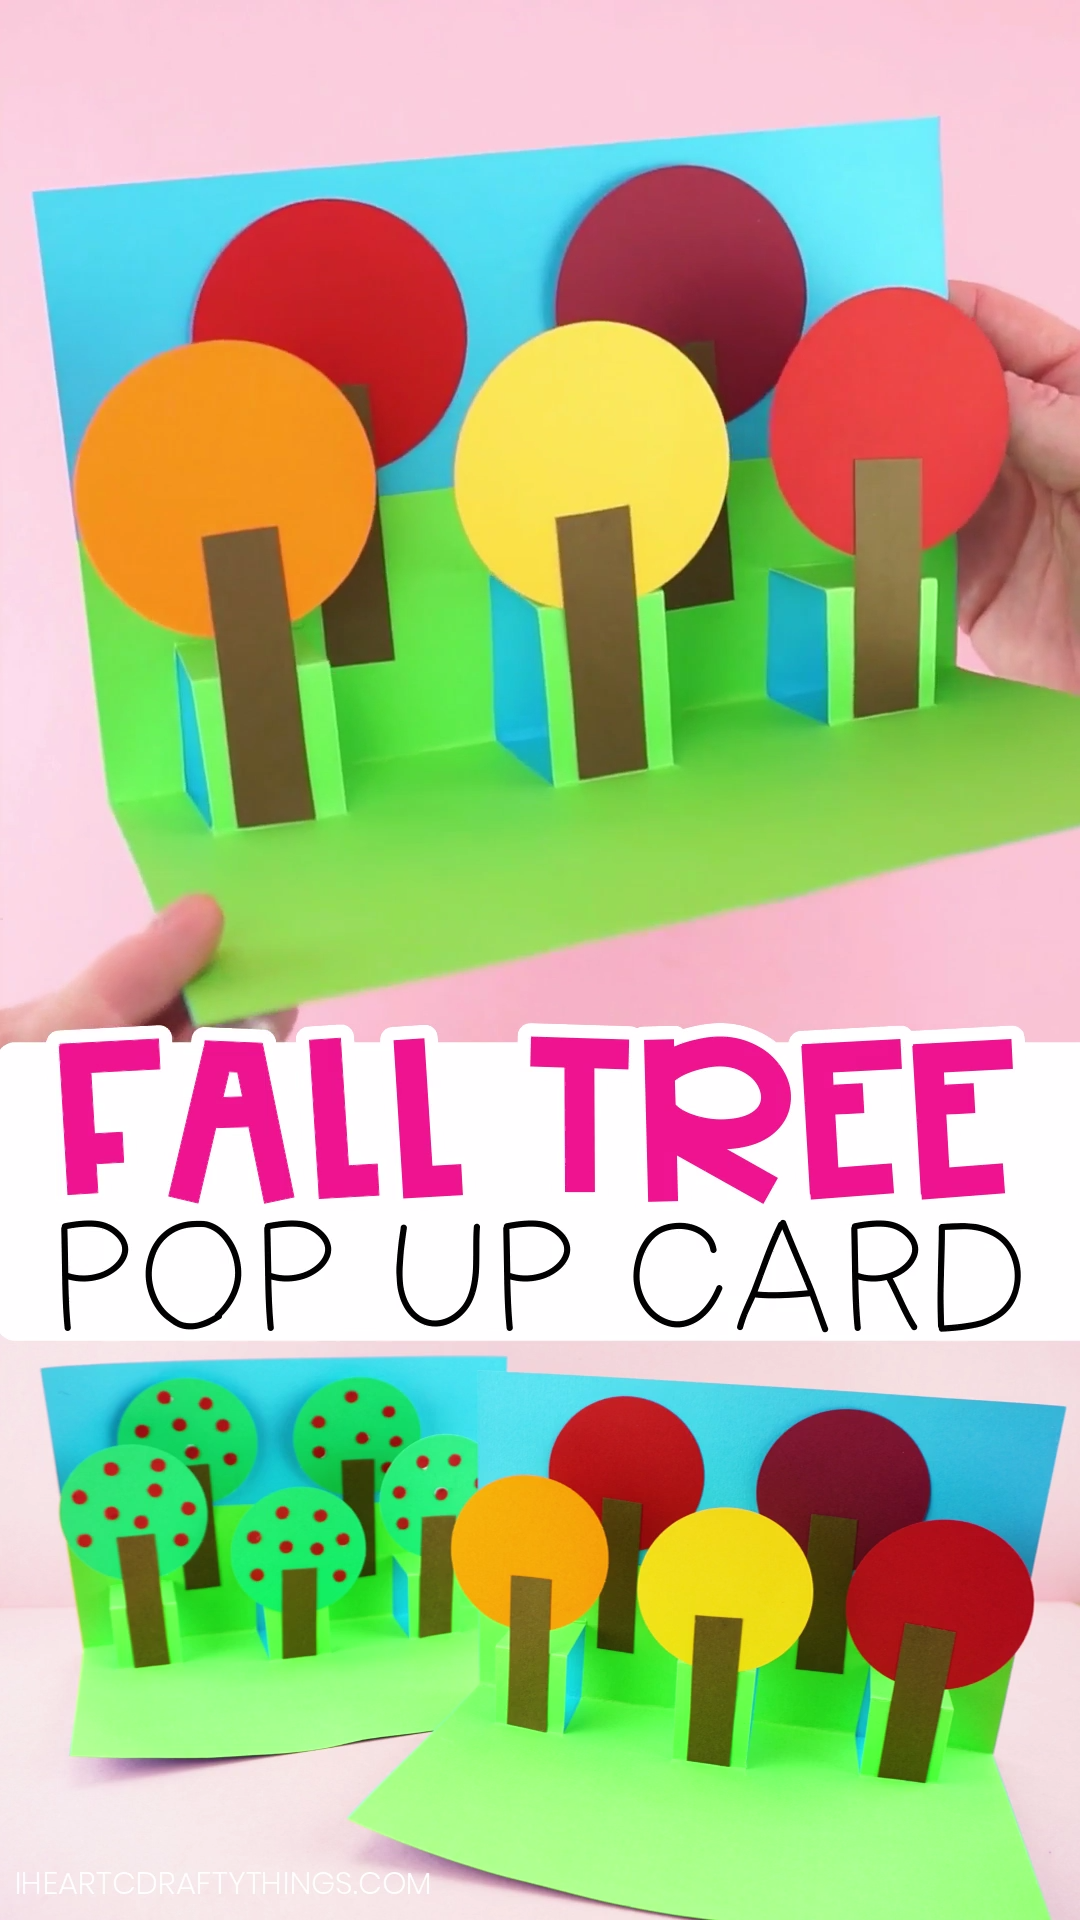 How to Make a Fall Tree Pop Up Card